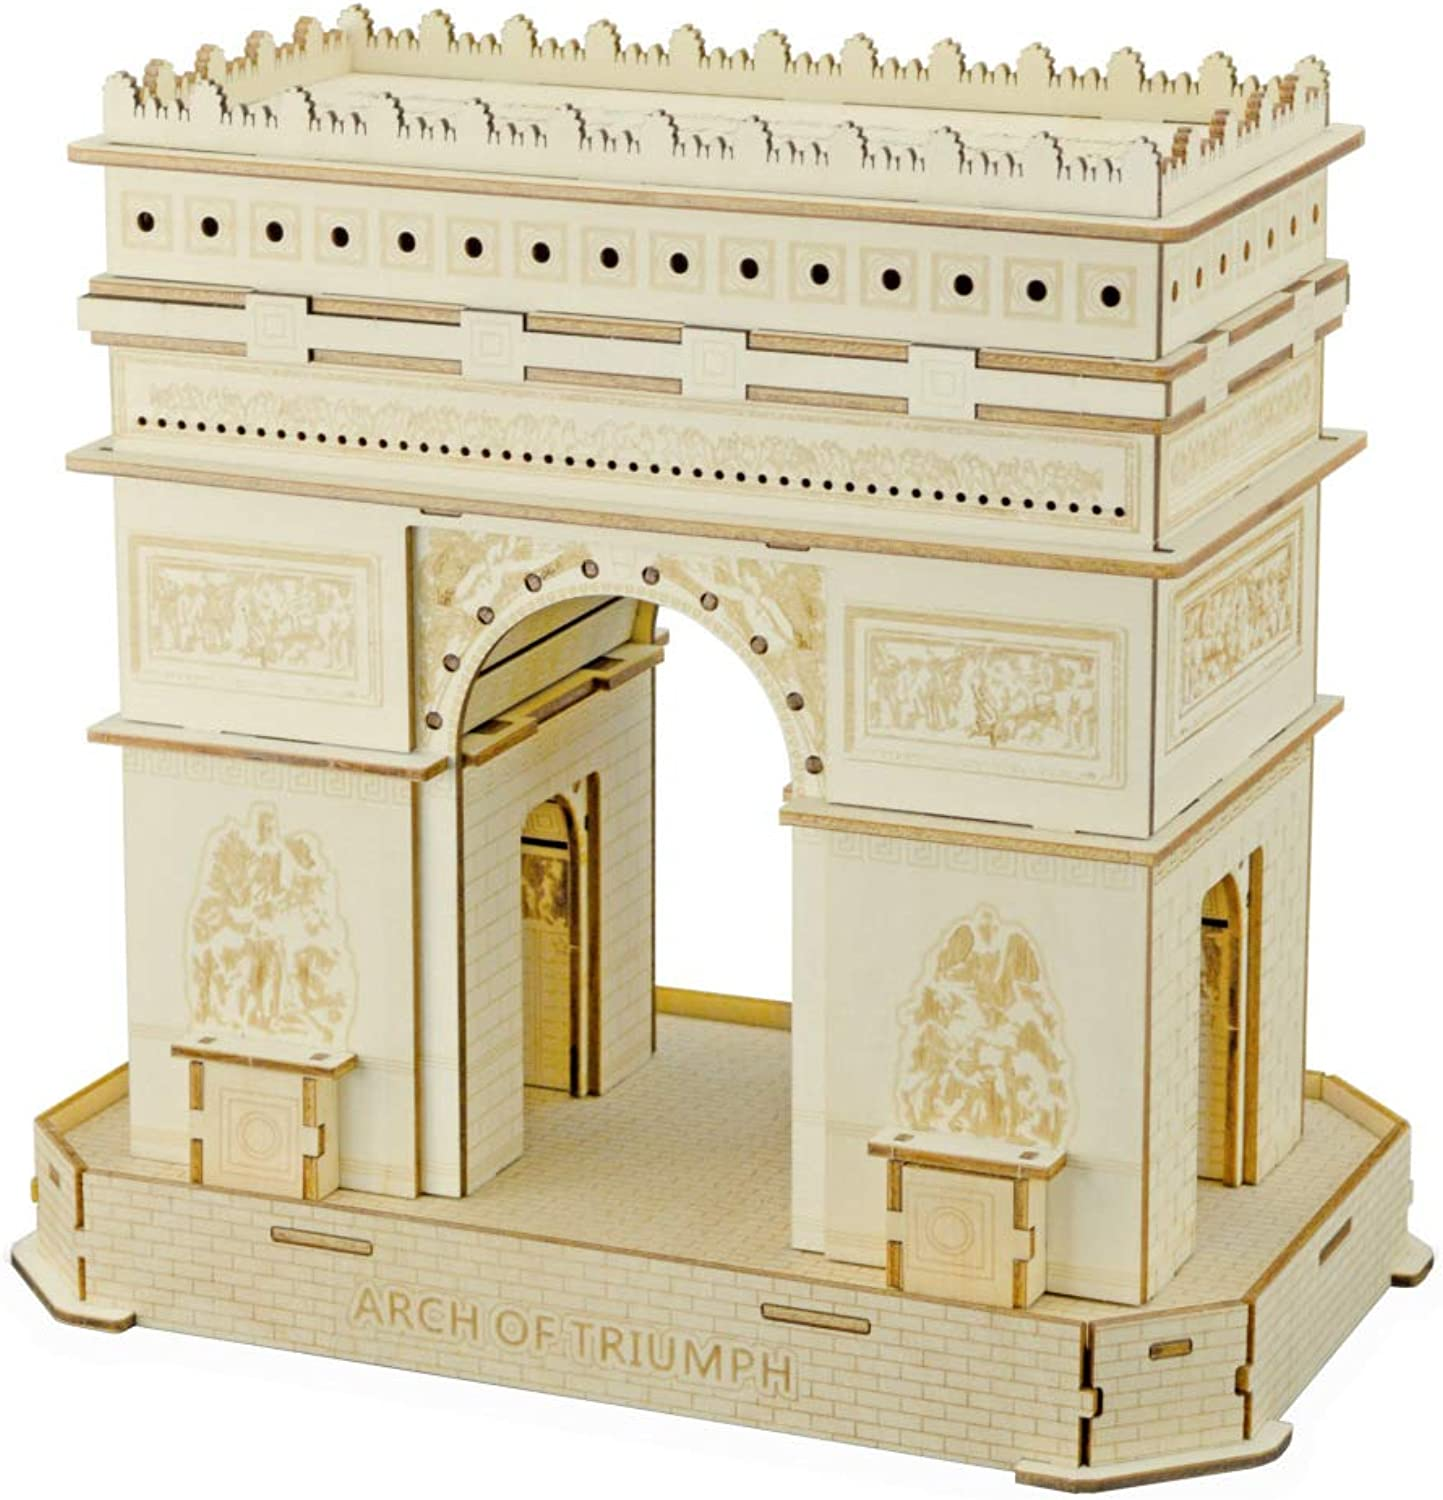 Juler Educational Toy Building Puzzle Paris Arc de Triomphe  color Boxed 3D Wooden DIY ThreeDimensional Jigsaw Puzzle boardcutting,Yellow,One Size